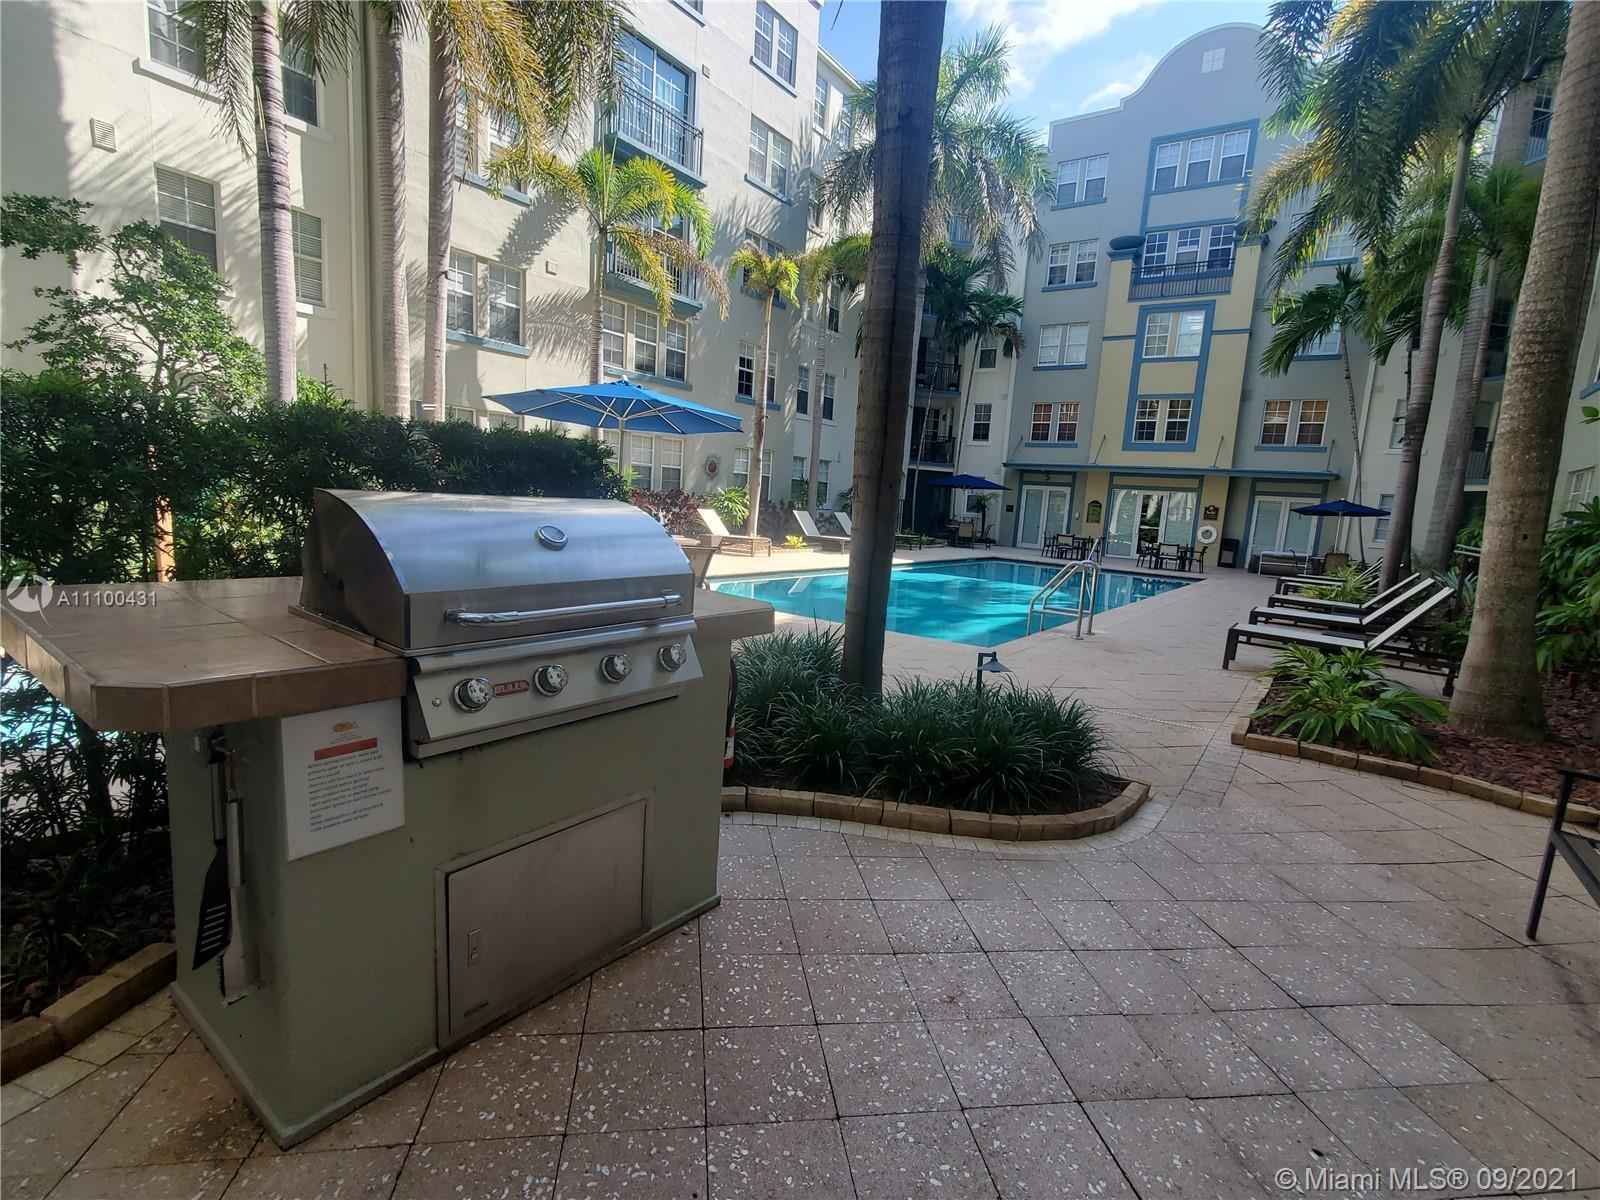 Minutes to the Las Olas action, this downtown Fort Lauderdale property is within the exciting Flagle